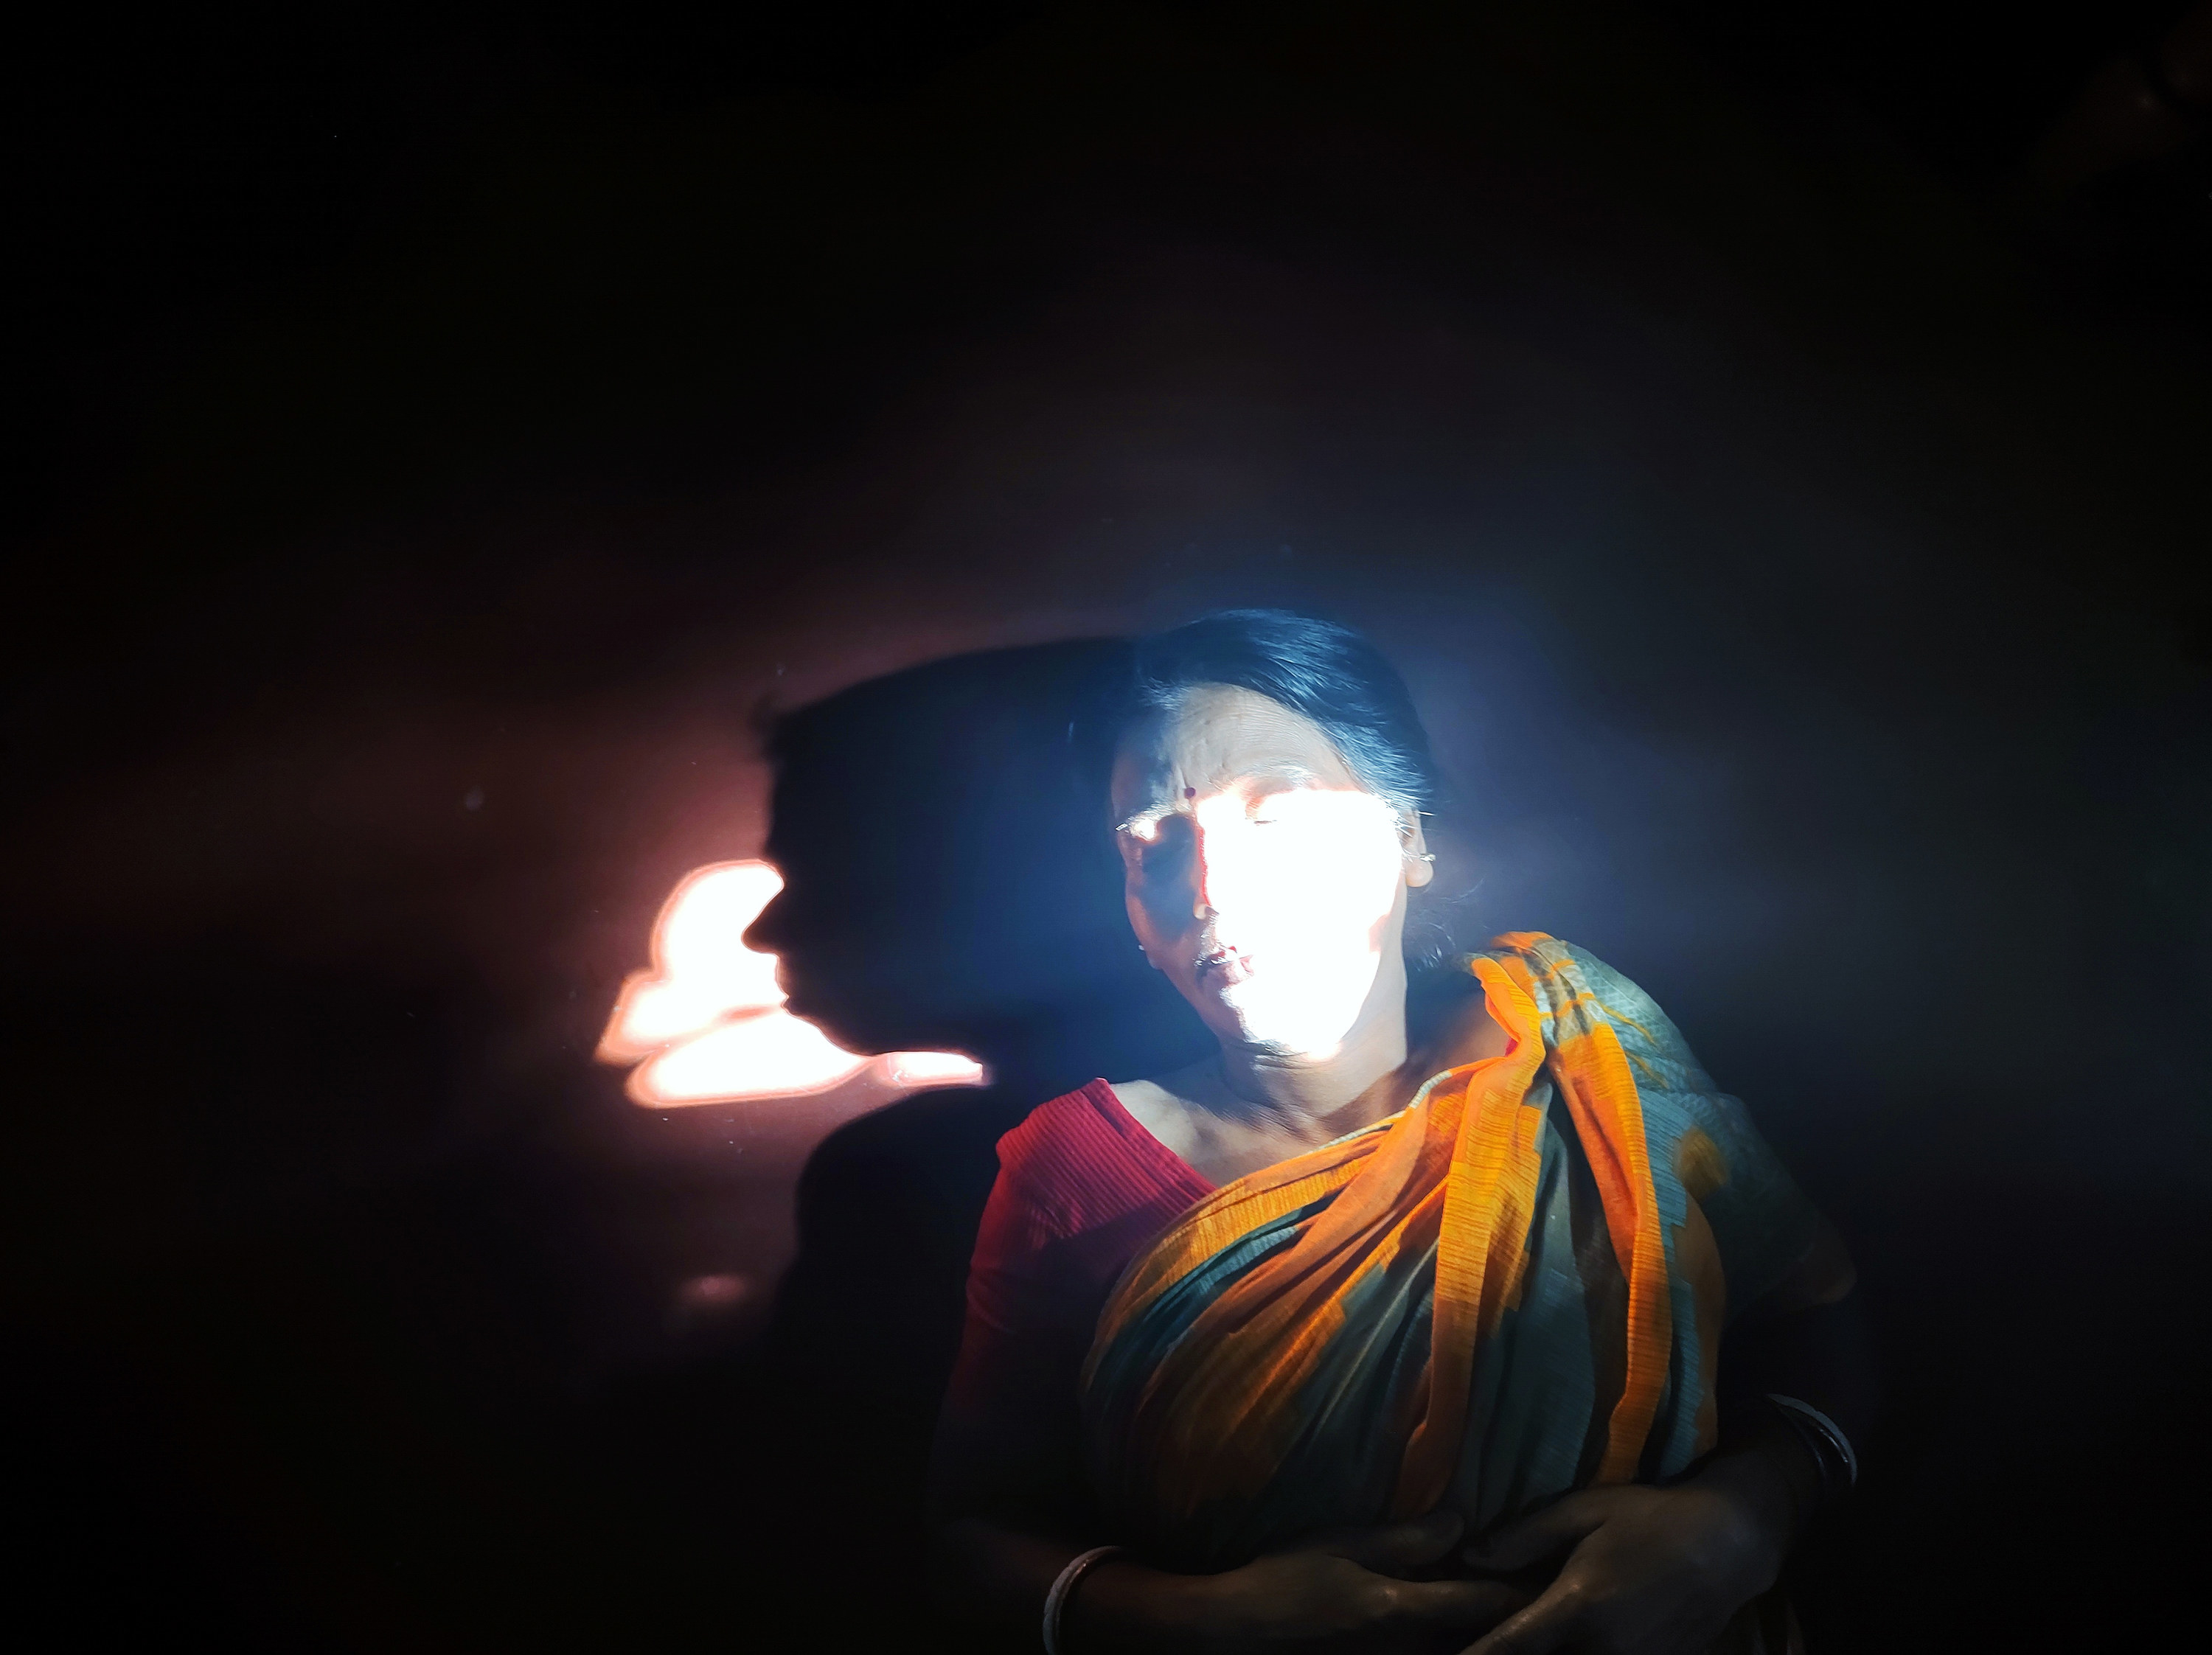 A woman in a sari with a bright light flashing across her